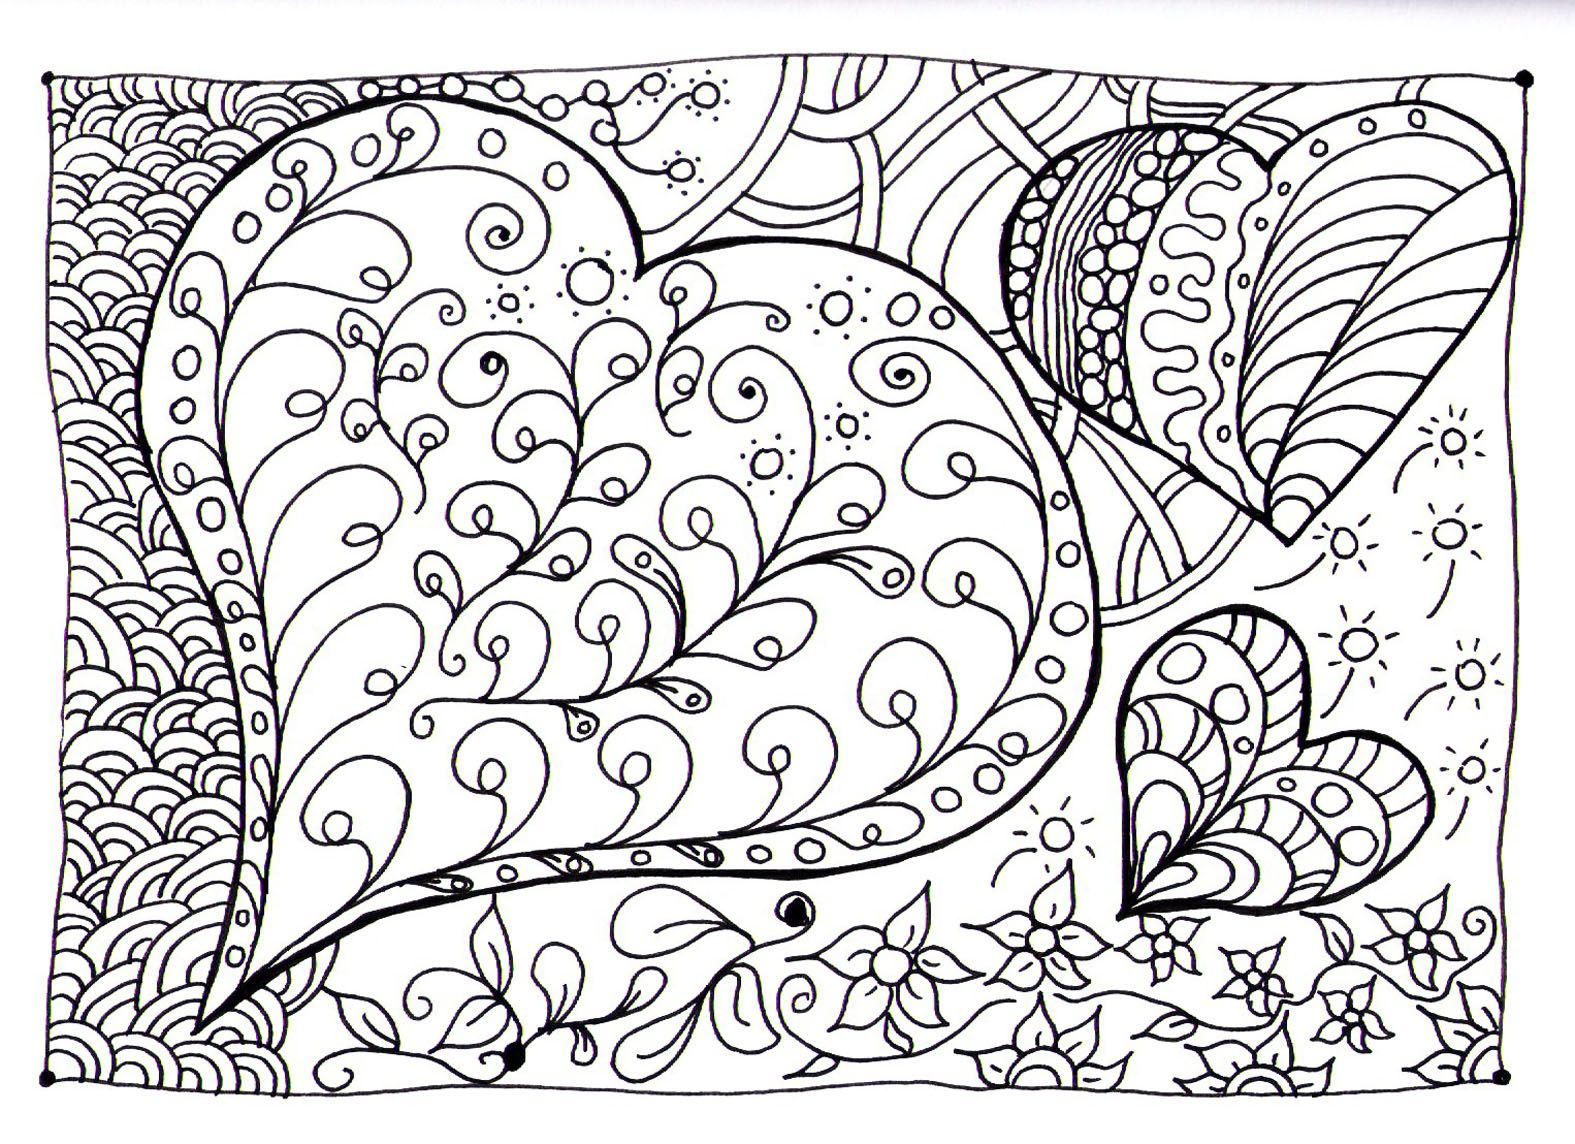 Free Coloring Page Heart Zen Magnificient Based On Drawings Of Hearts And Other Shapes